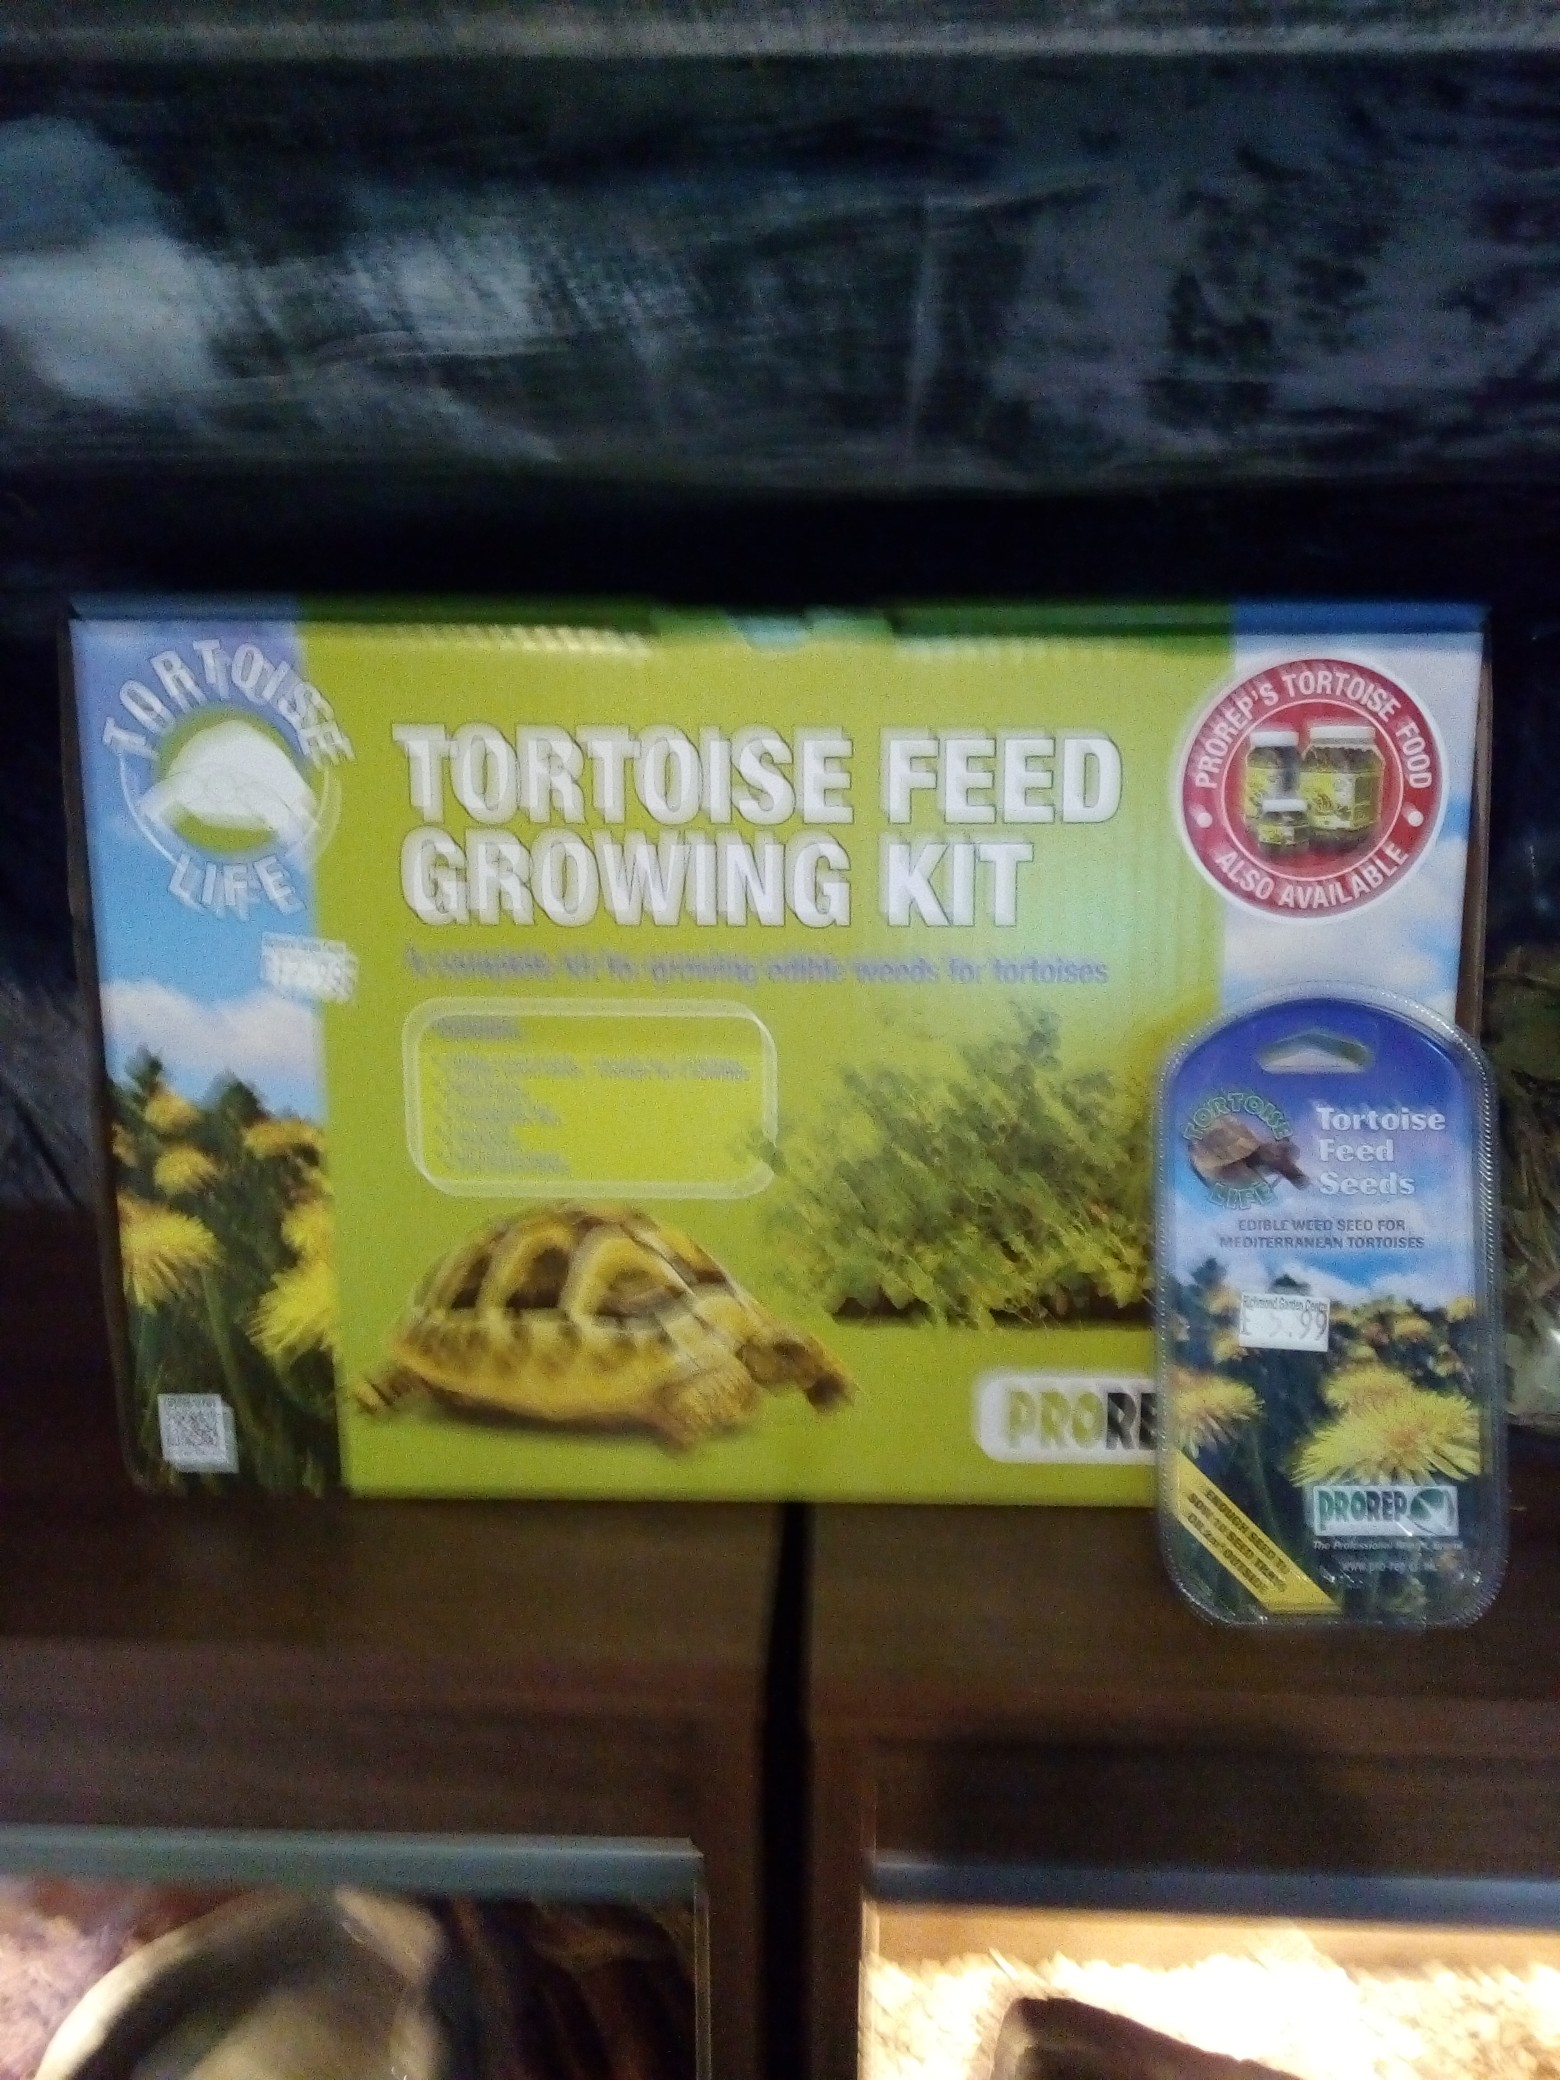 tortoise feed growing kit and seeds